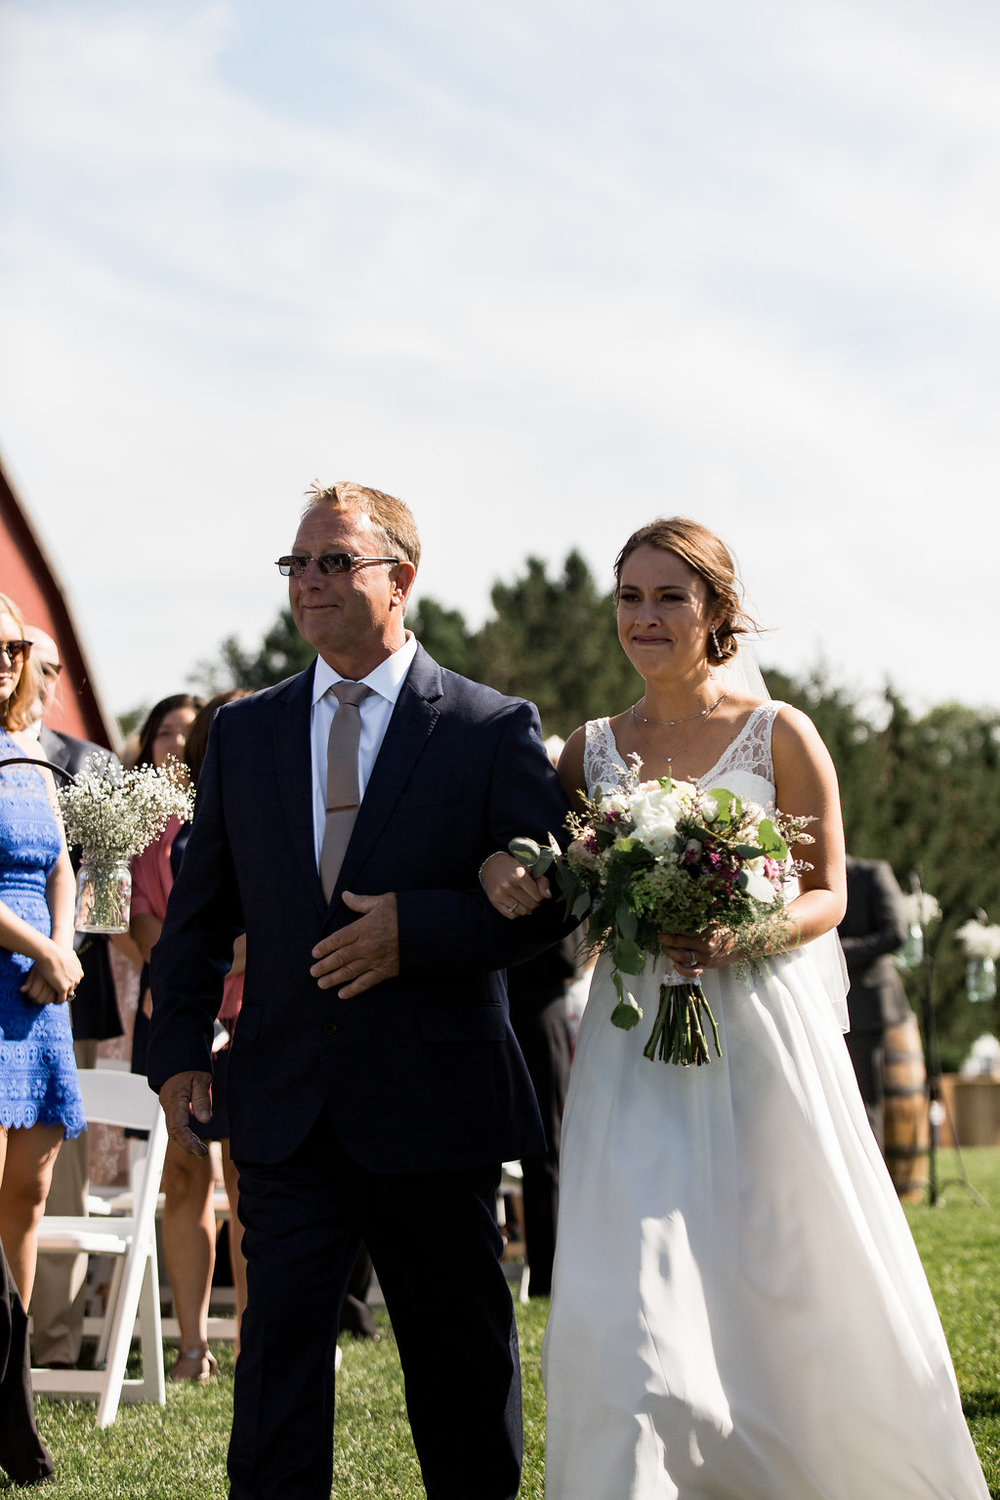 Sonshine_barn_northern_michigan_wedding_-67.jpg